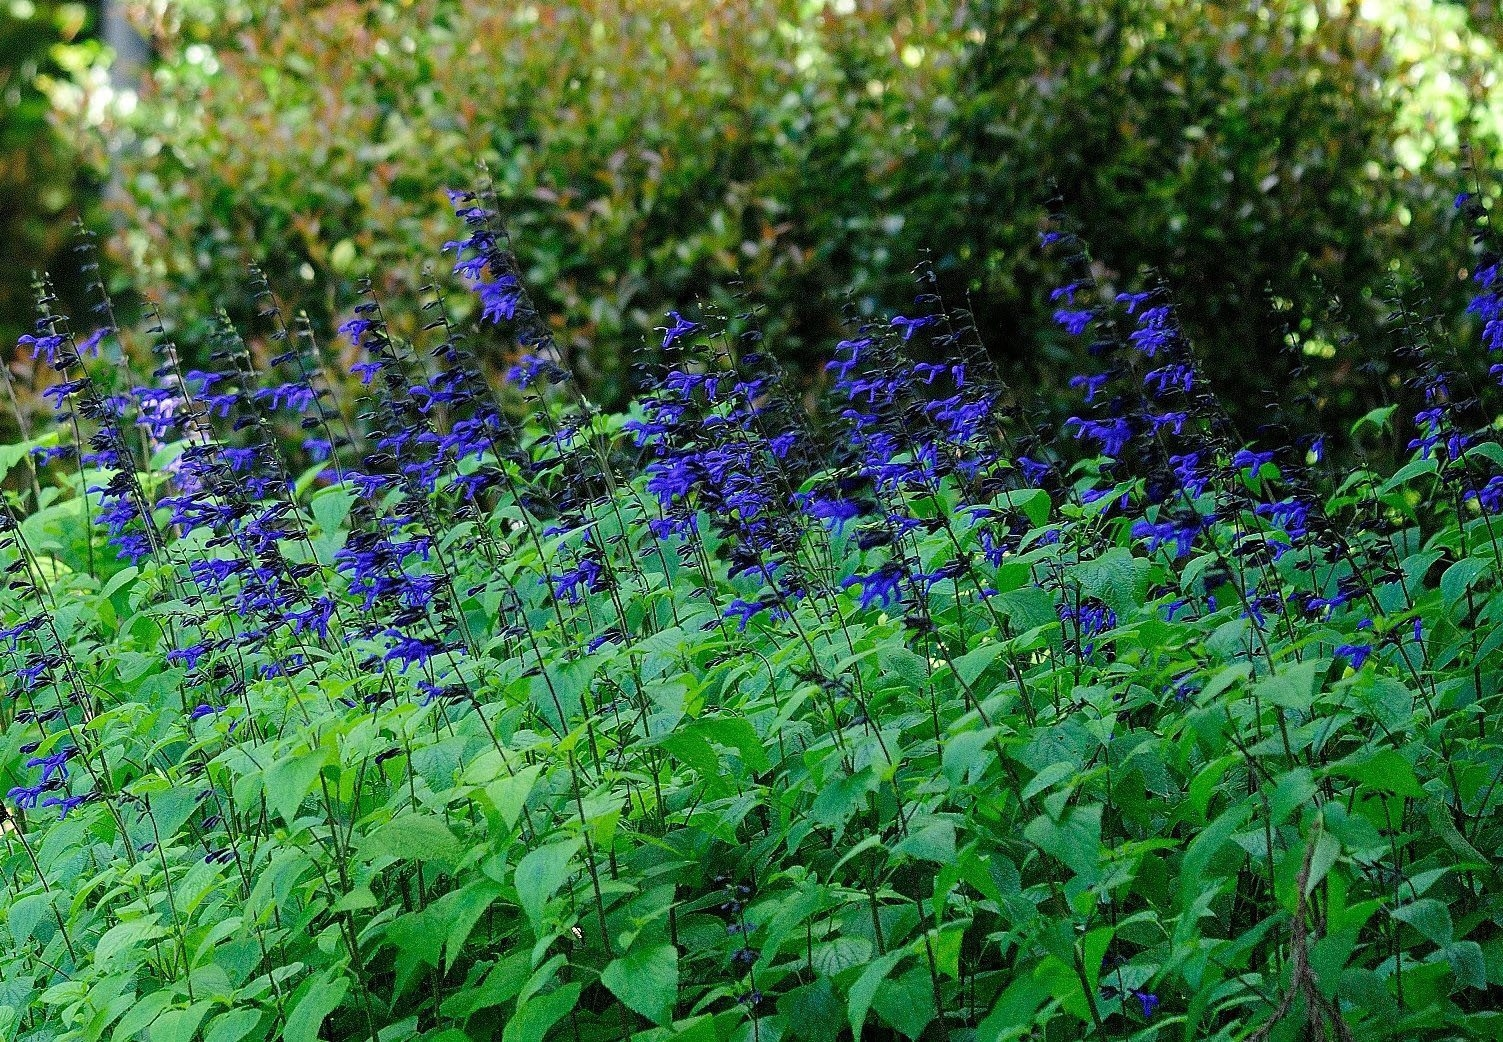 The Black and Blue salvia can reach 4 to 5 feet in height so consider the back of the border for its location.